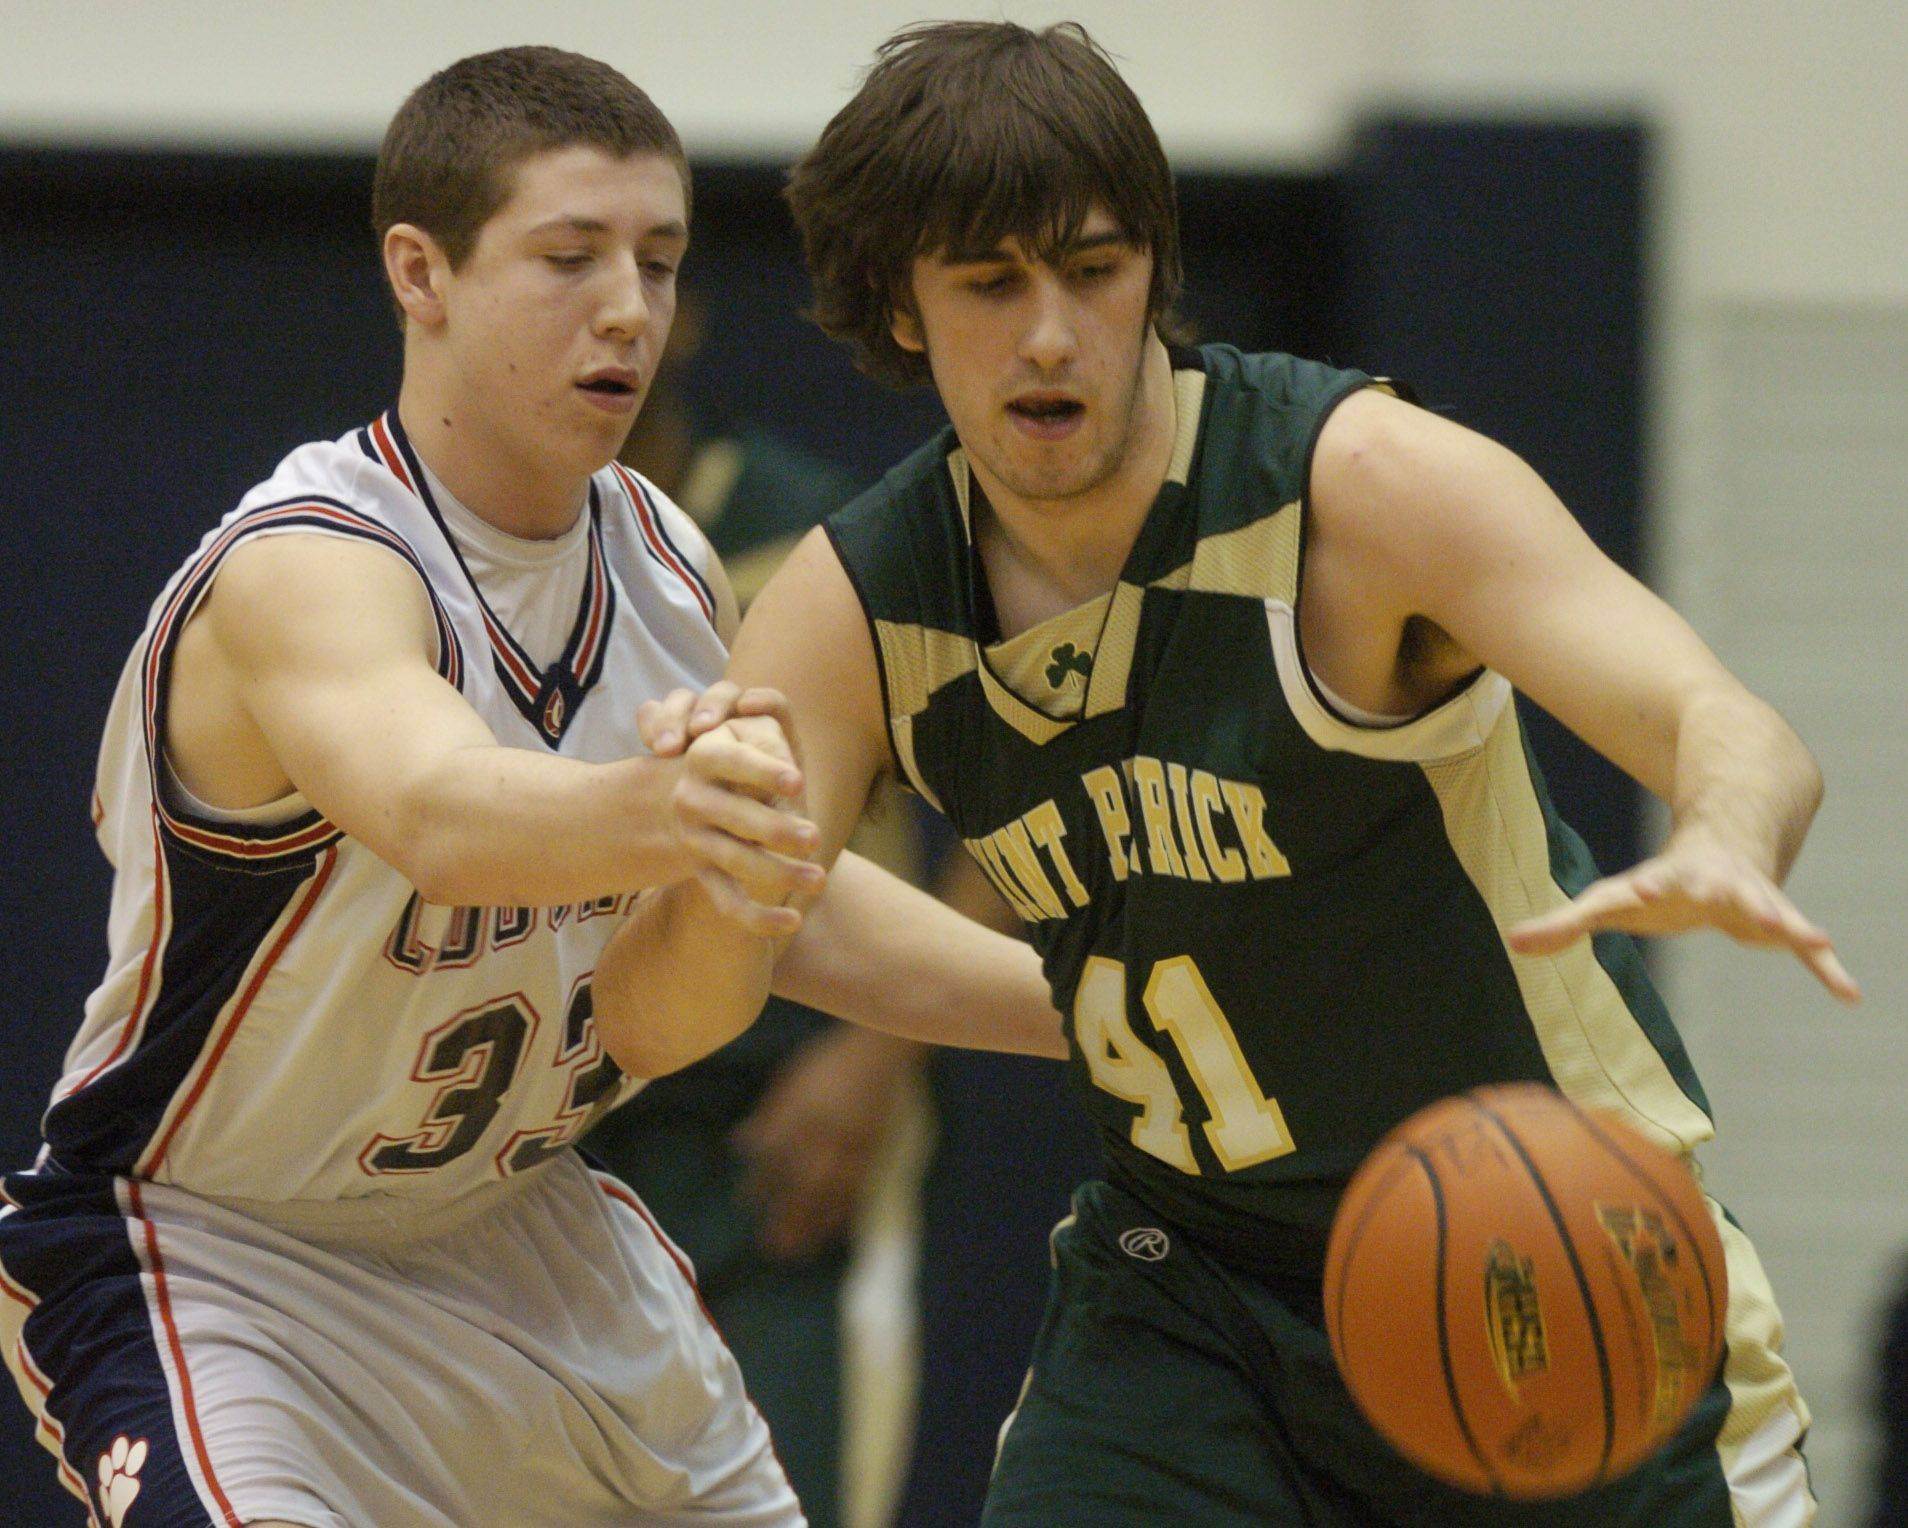 Conant's Tim Manczko, left, tries to take the ball from St. Patrick's Dan Caplis Wednesday.